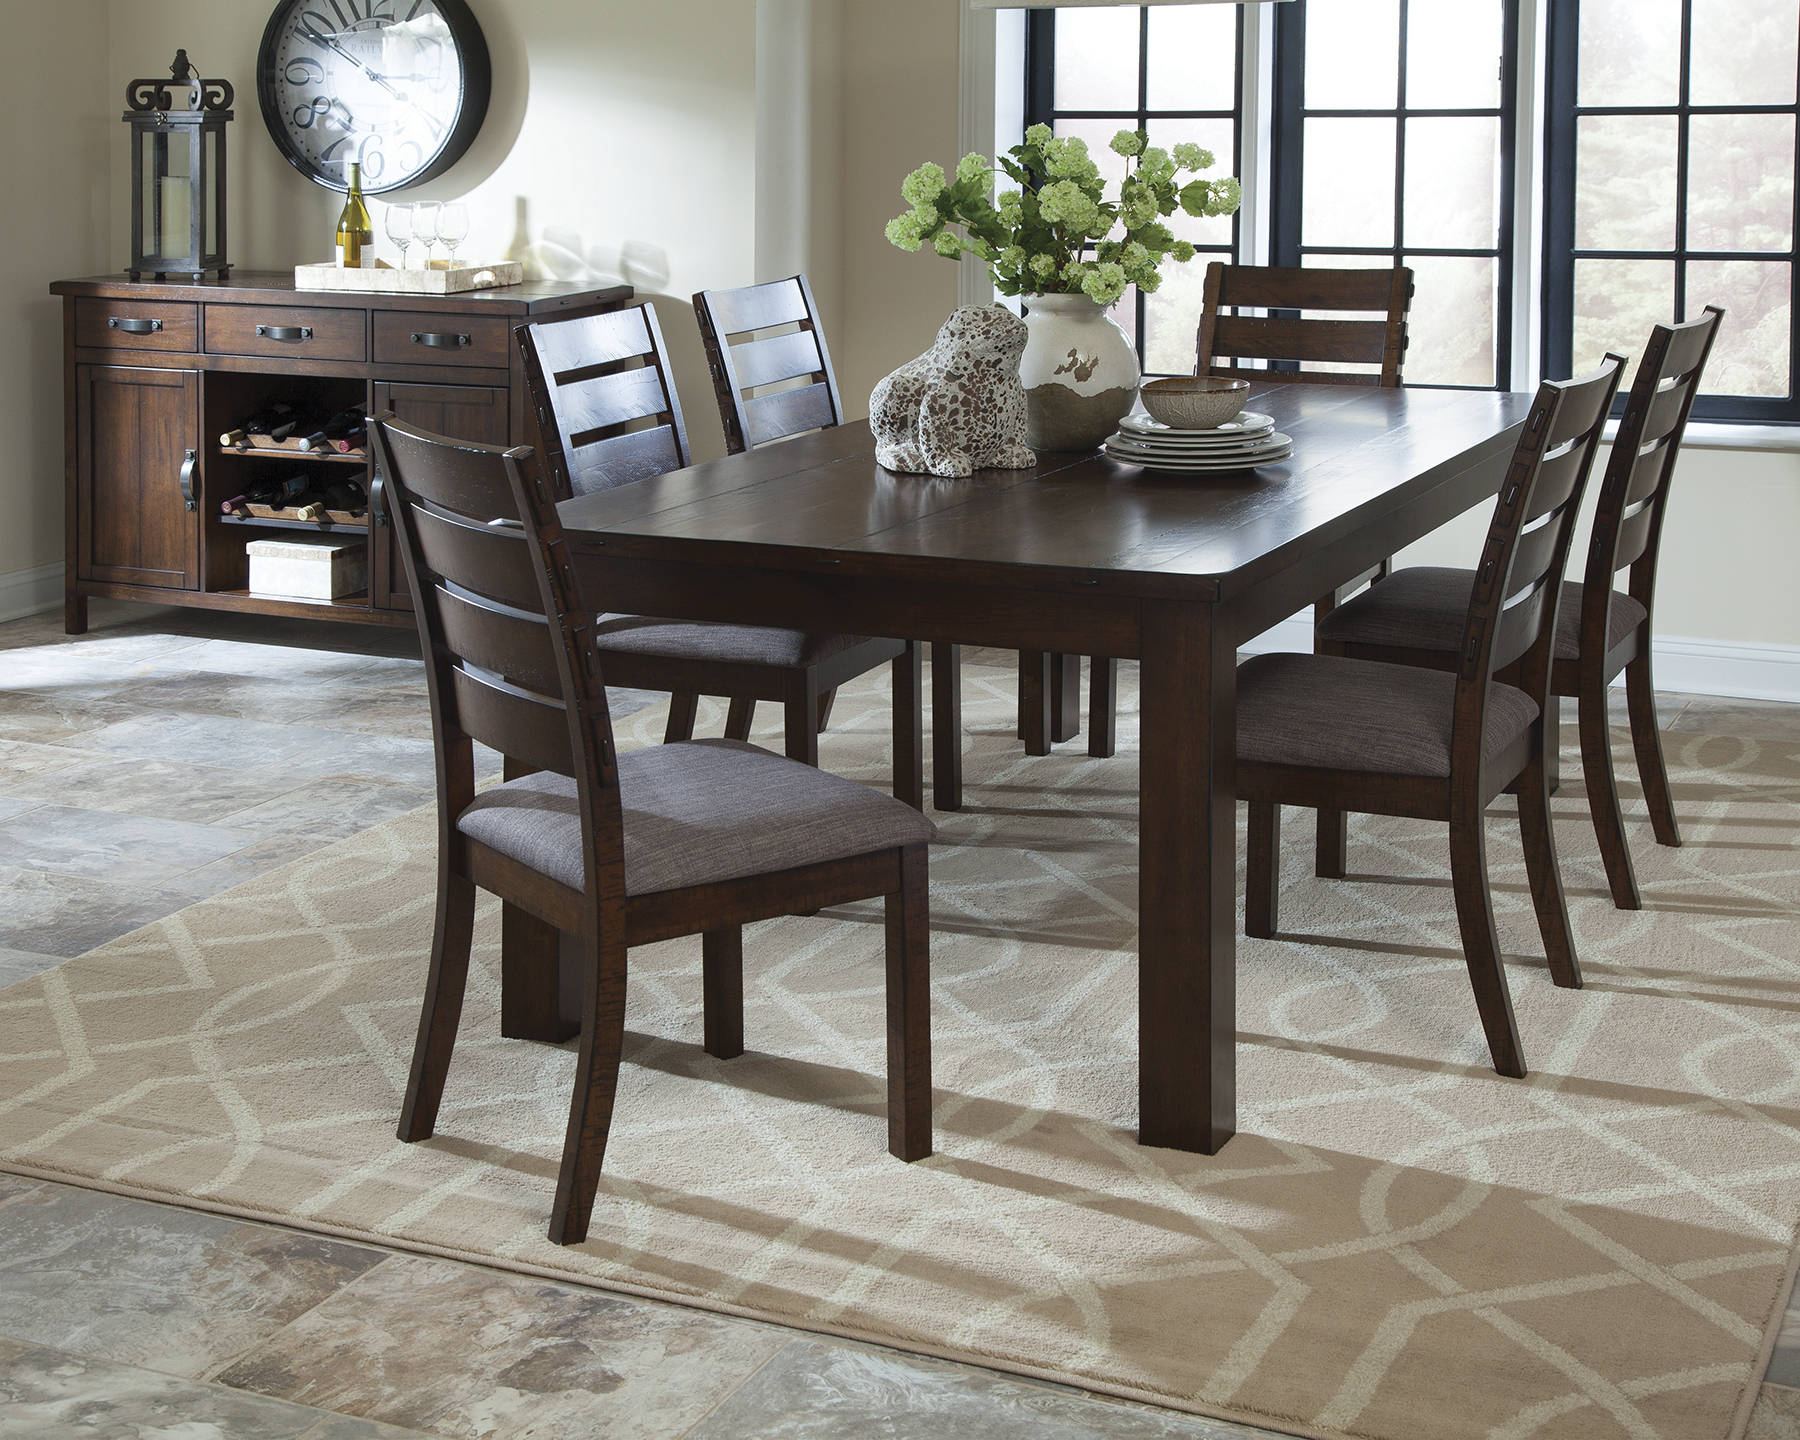 Wiltshire rustic pecan grey wood fabric dining room set for Best deals on dining room sets